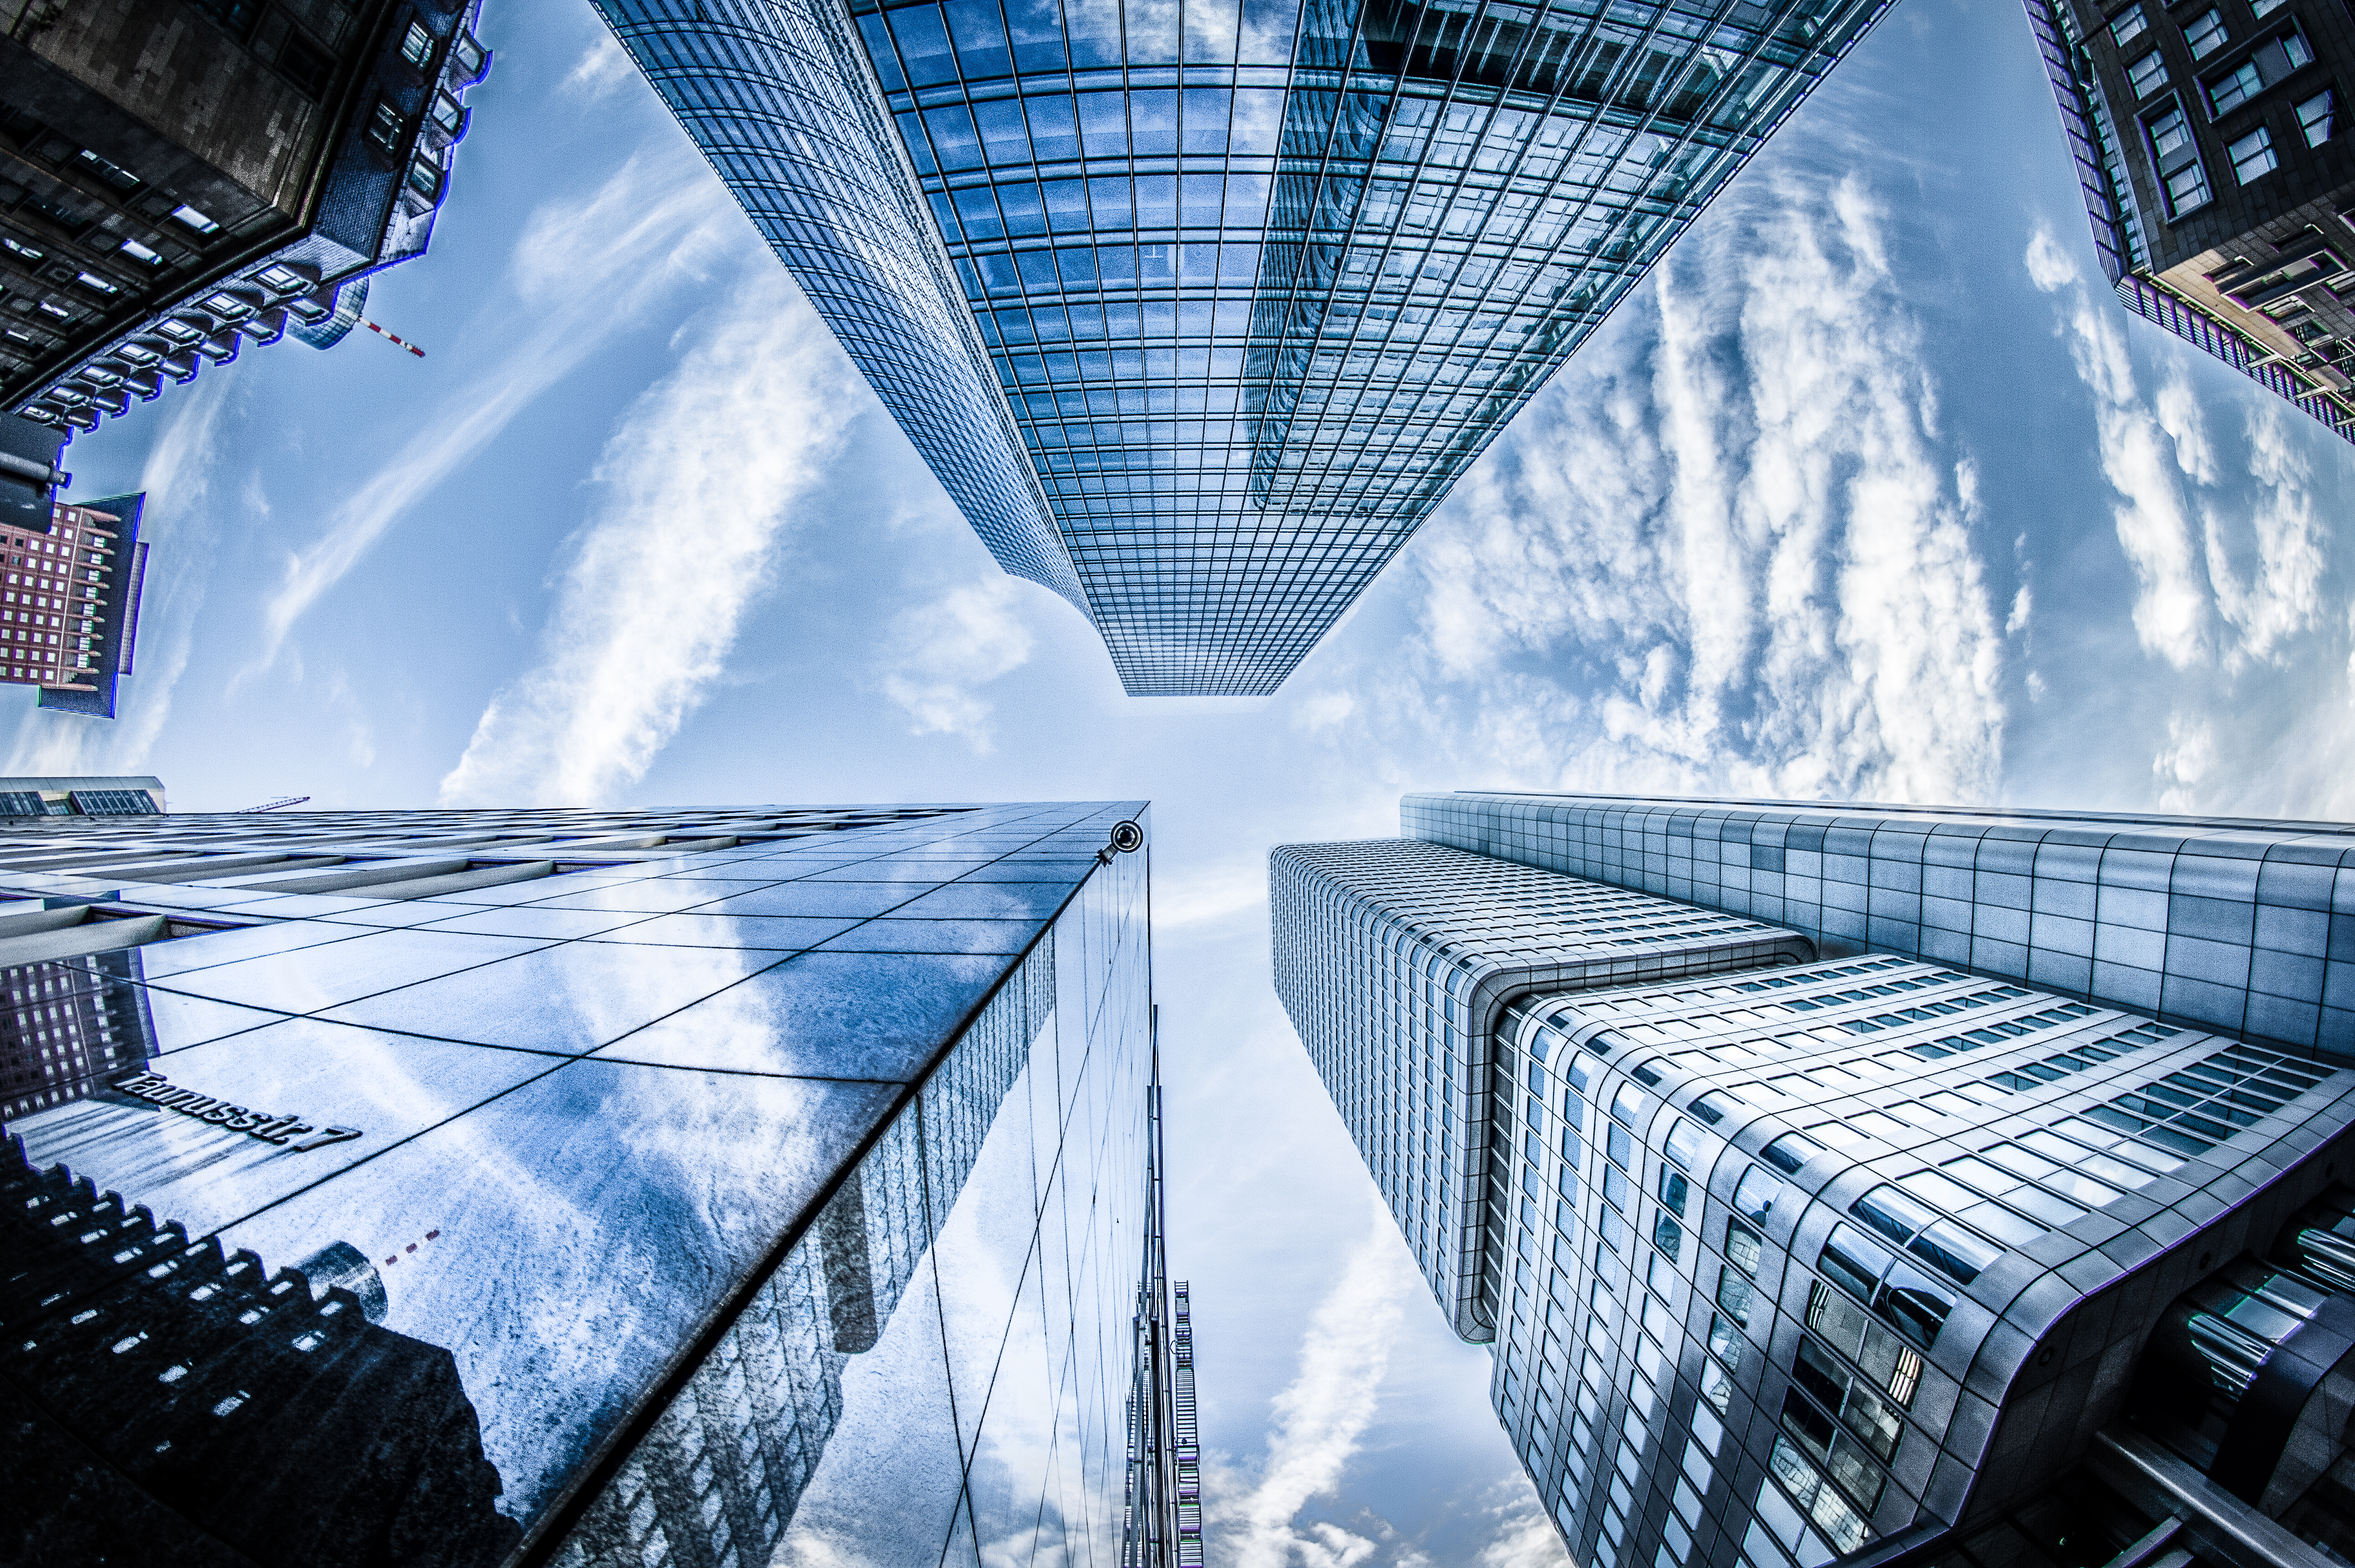 Ground view looking up of glass buildings; image by Philipp Birmes, via Unsplash.com.